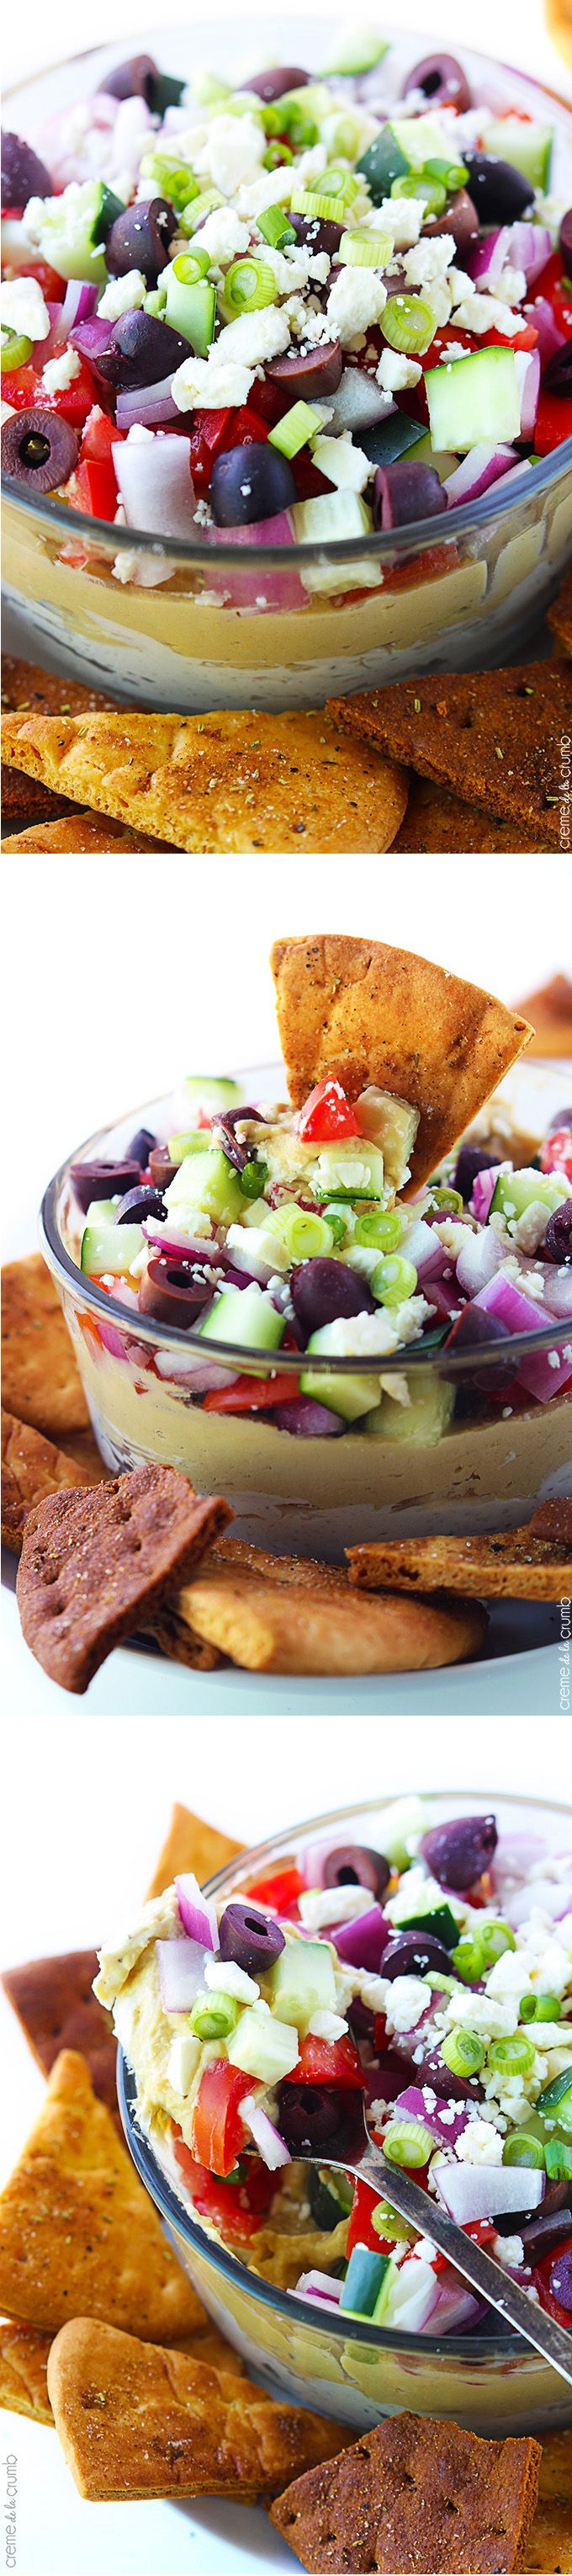 7 Layer Greek Hummus Dip... similar to one of my favorite 7 layer greek recipes. Like it a little less chunky.